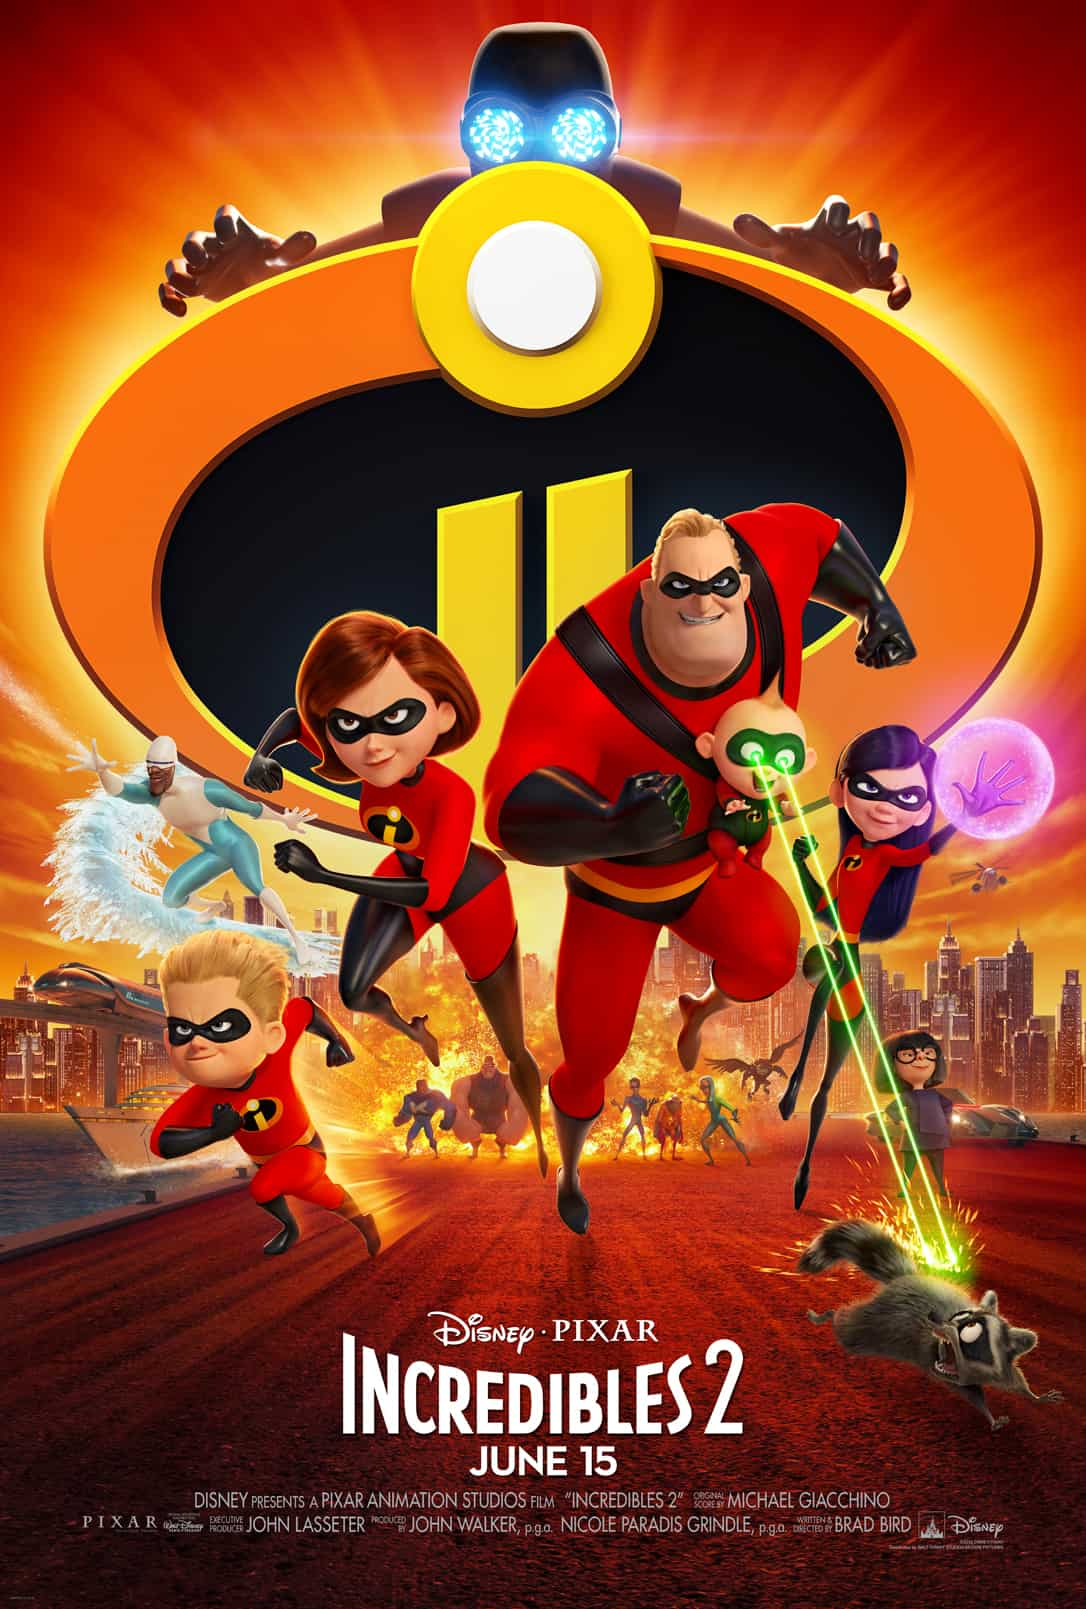 About Incredibles 2